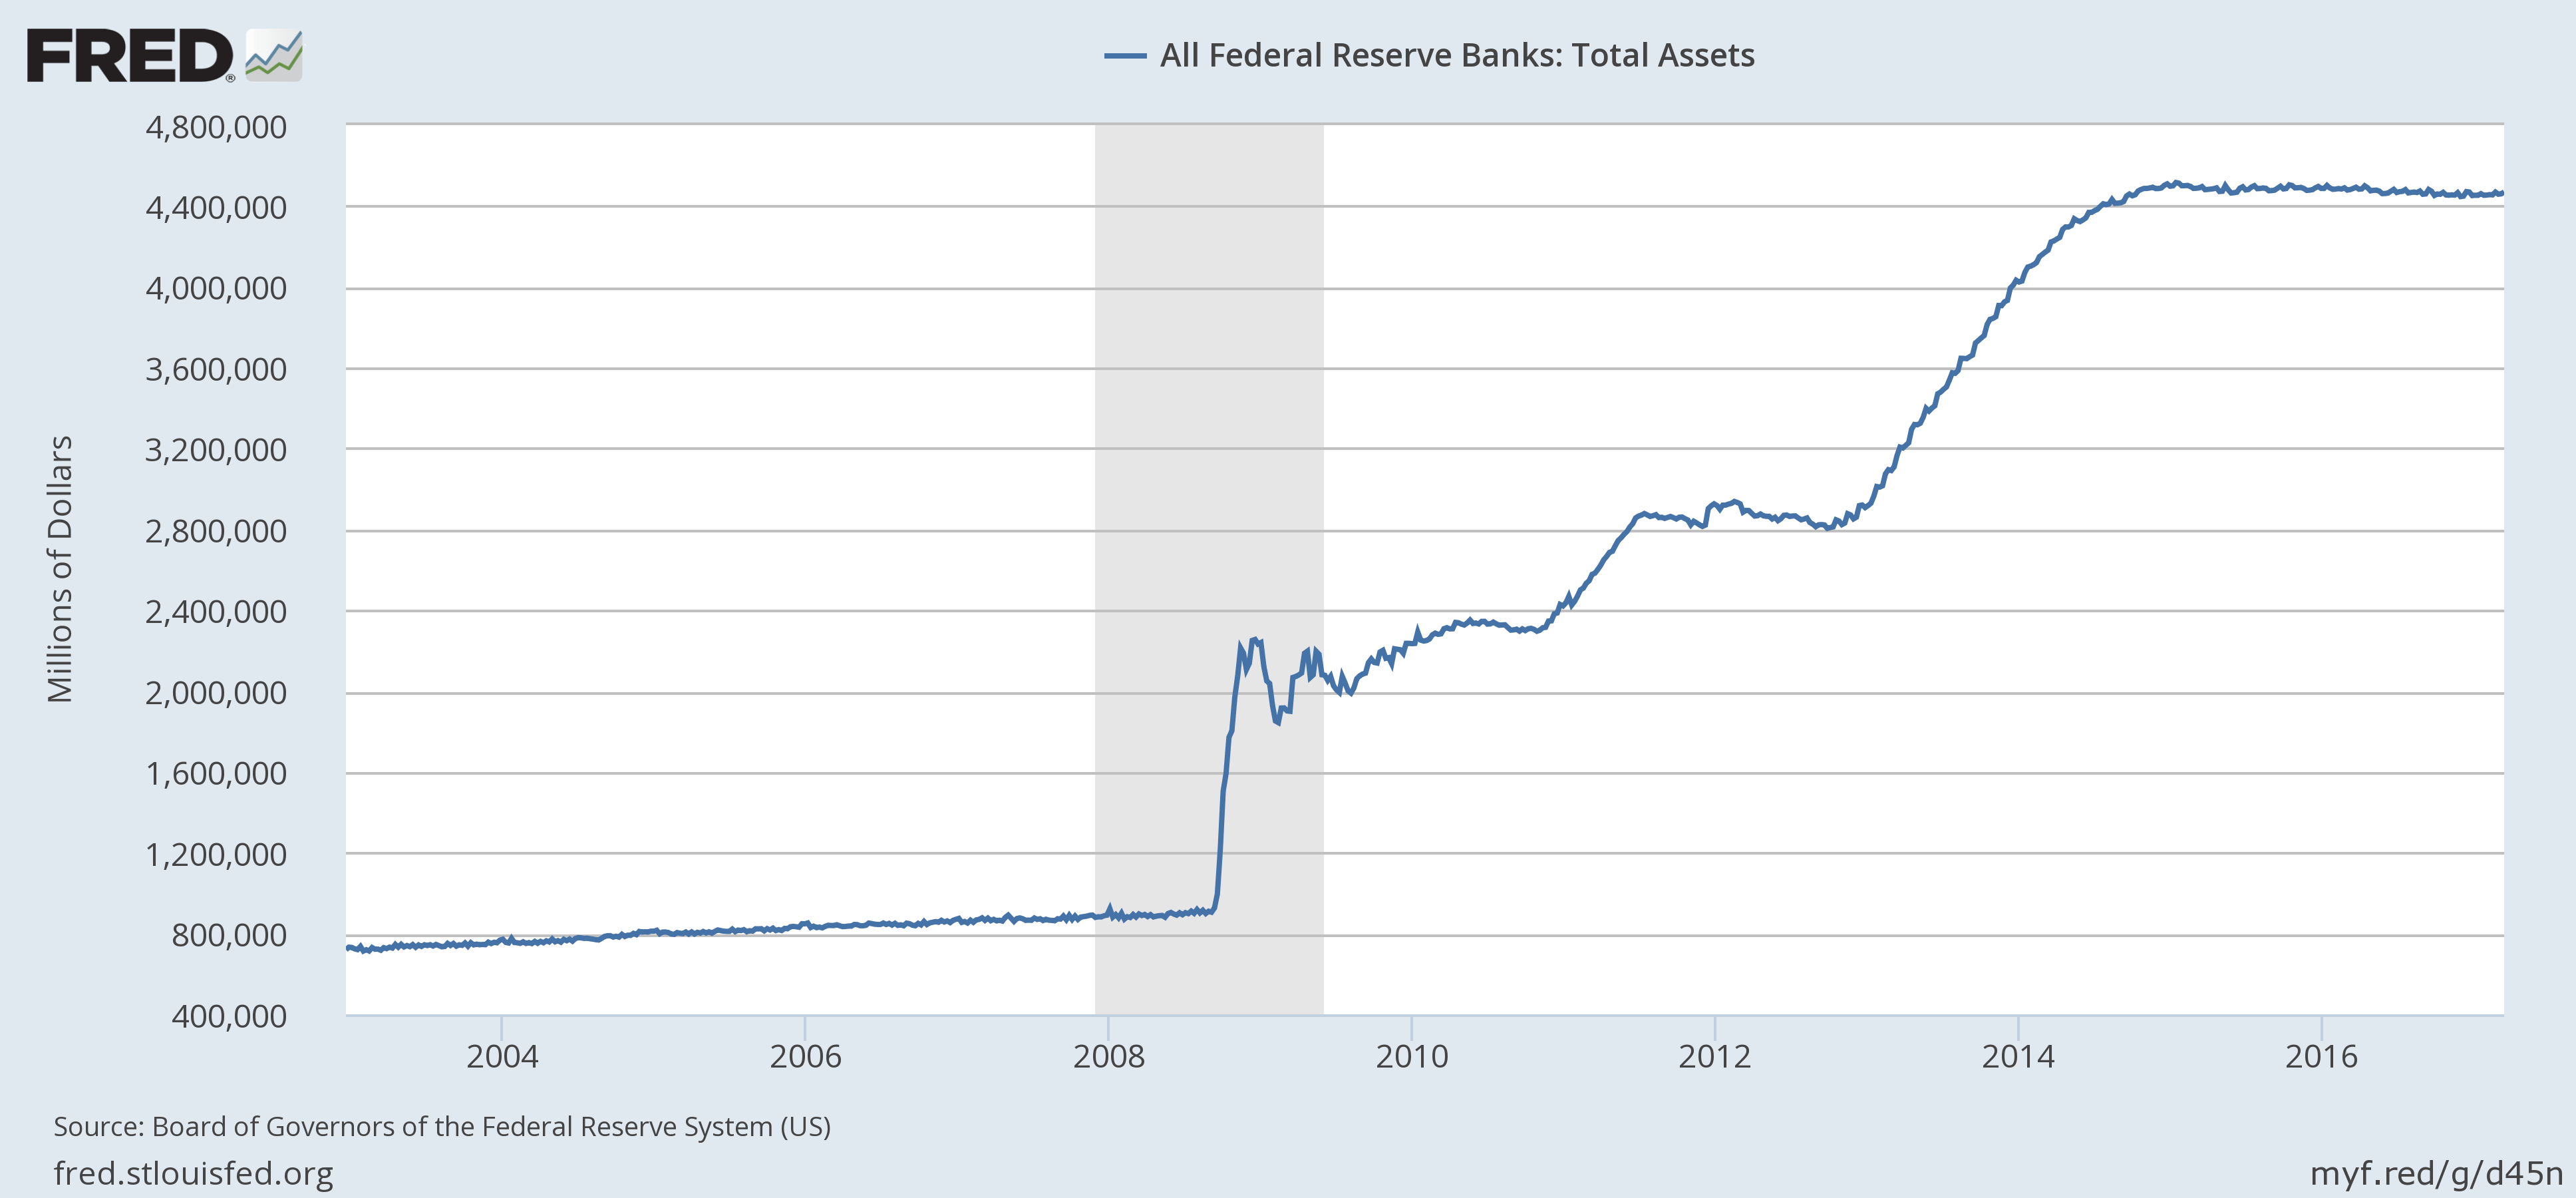 Total Assets of the Federal Reserve Banks